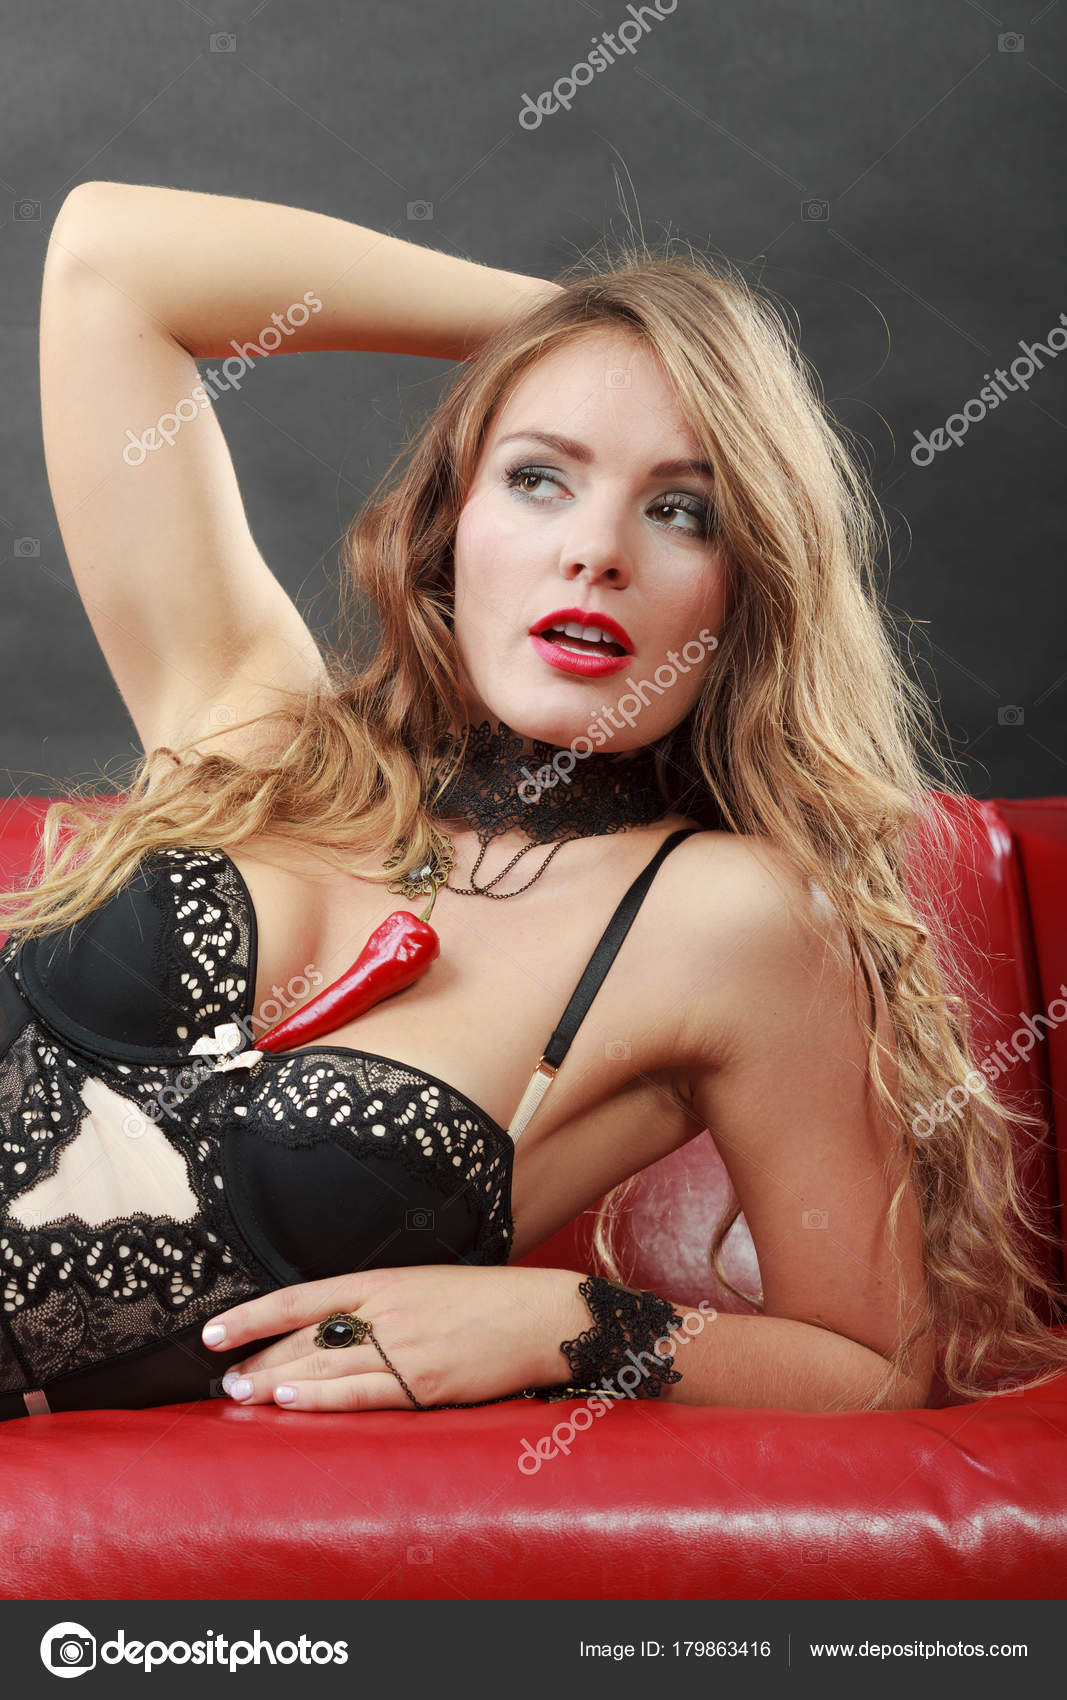 Surprising Woman Wearing Sexy Black Lingerie Underwear Holding Pepper Uwap Interior Chair Design Uwaporg